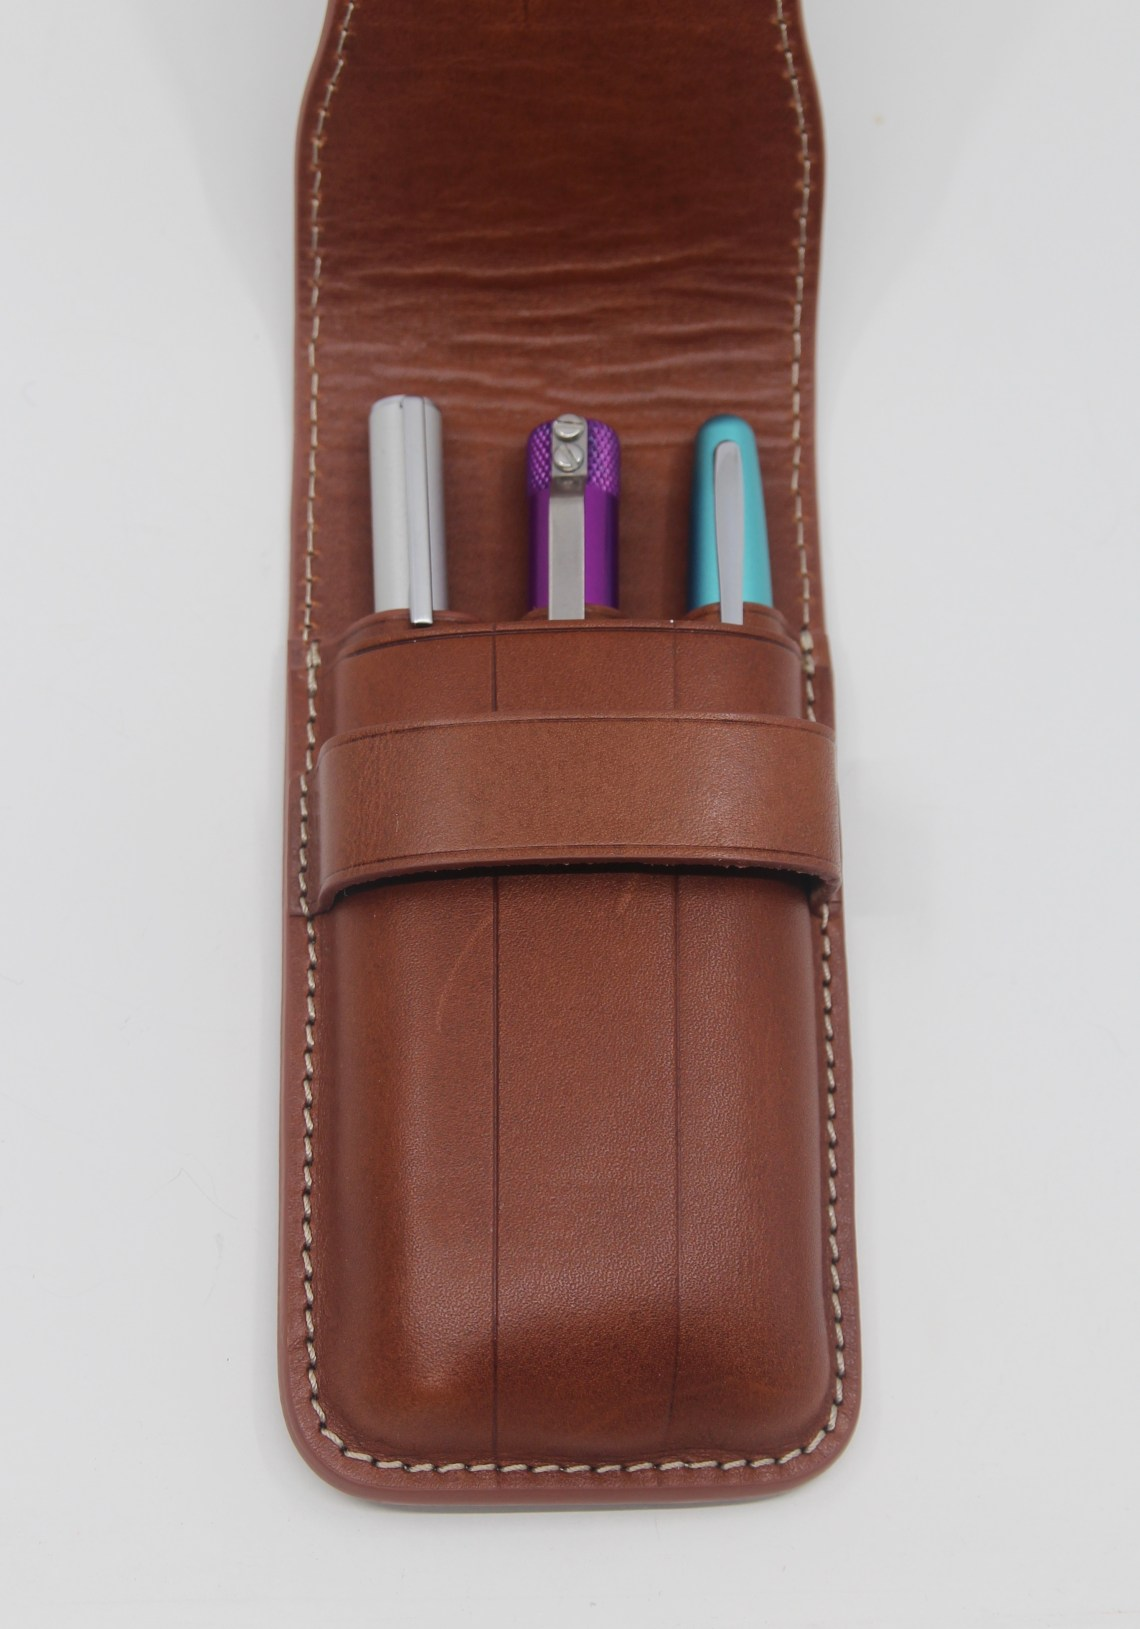 Galen Leather Cases